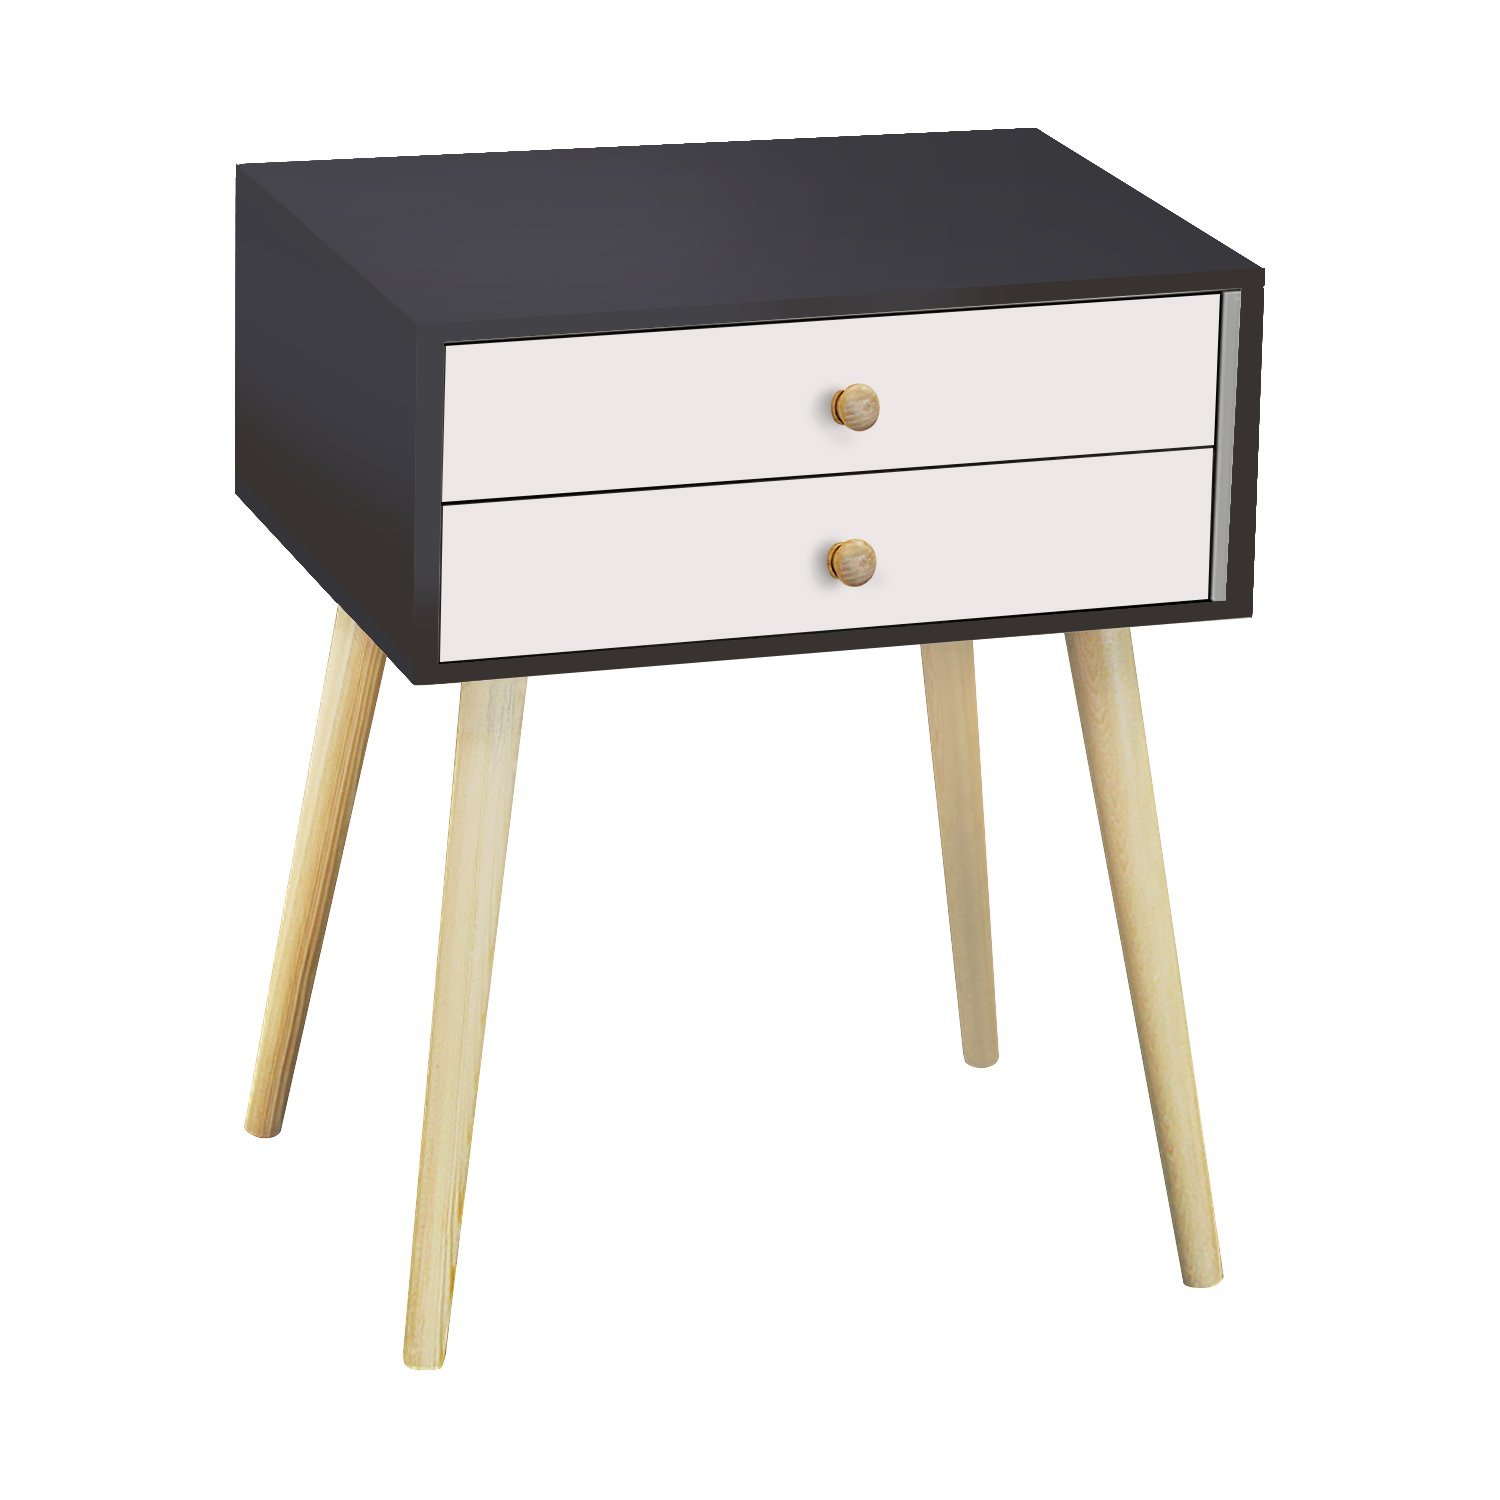 Jerry & Maggie - Nightstand Modern Fashion 4 Thin Long Legs Space Station - 2 Tier Cubic Night Stand Storage Bedside Table with 2 Drawer Real Natural Paulownia Wood | Navy & White